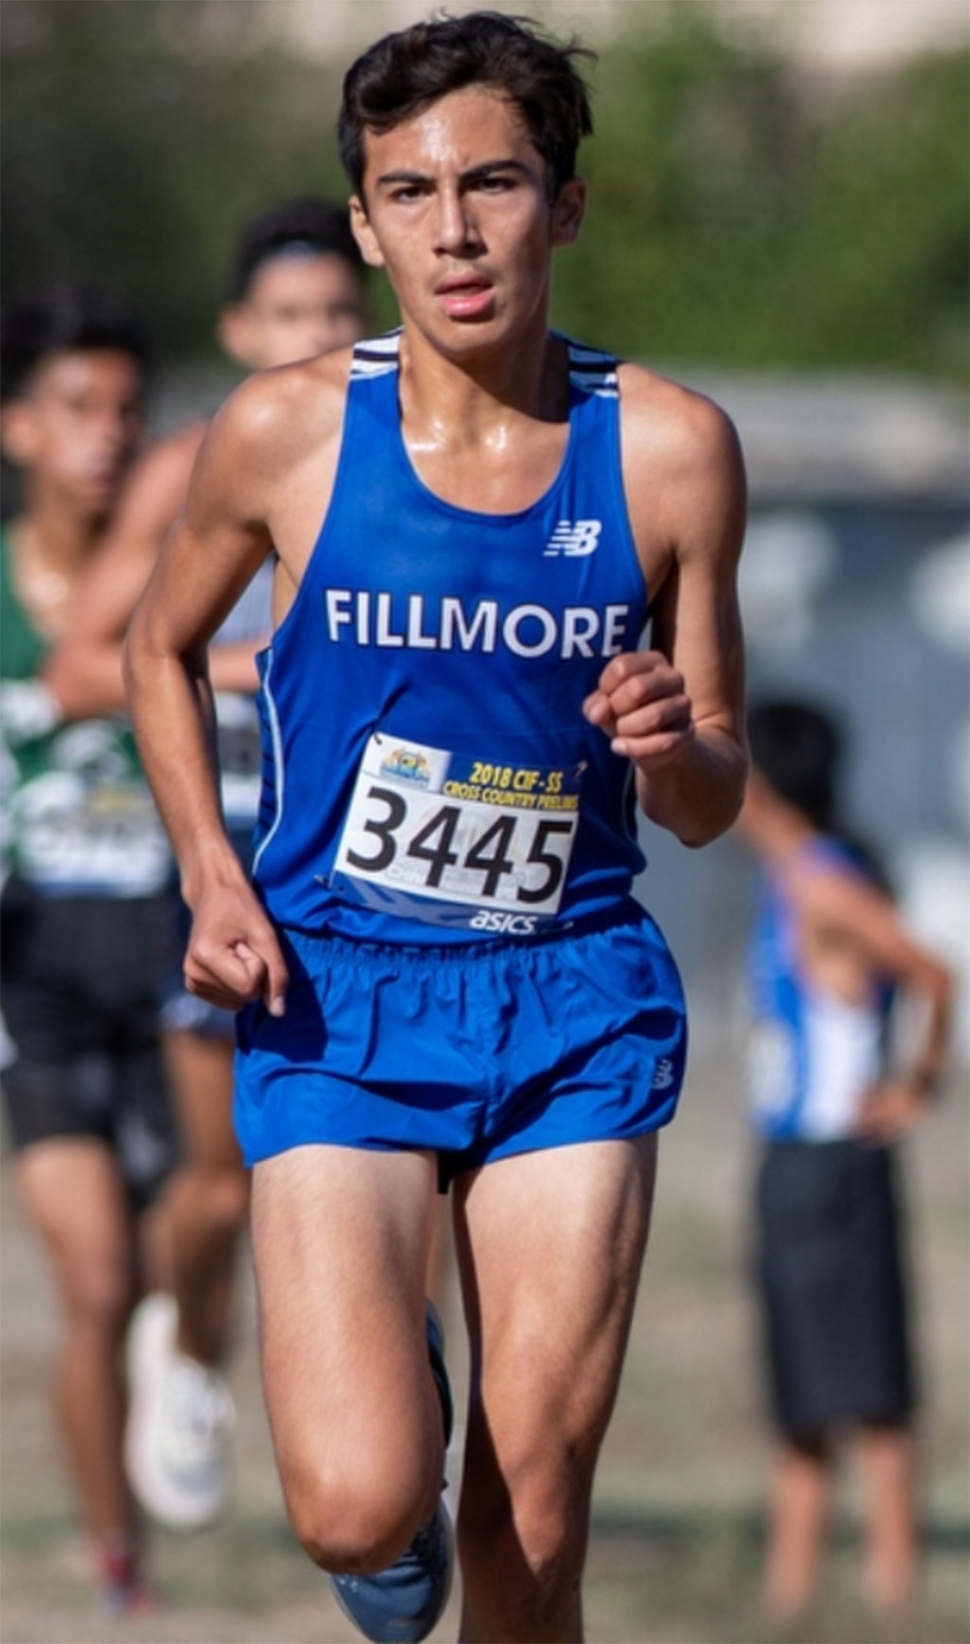 Sophomore Fabian Del Villar finished 9th with a personal best time of 15:49.6 and leads the Flashes at the Division IV CIF